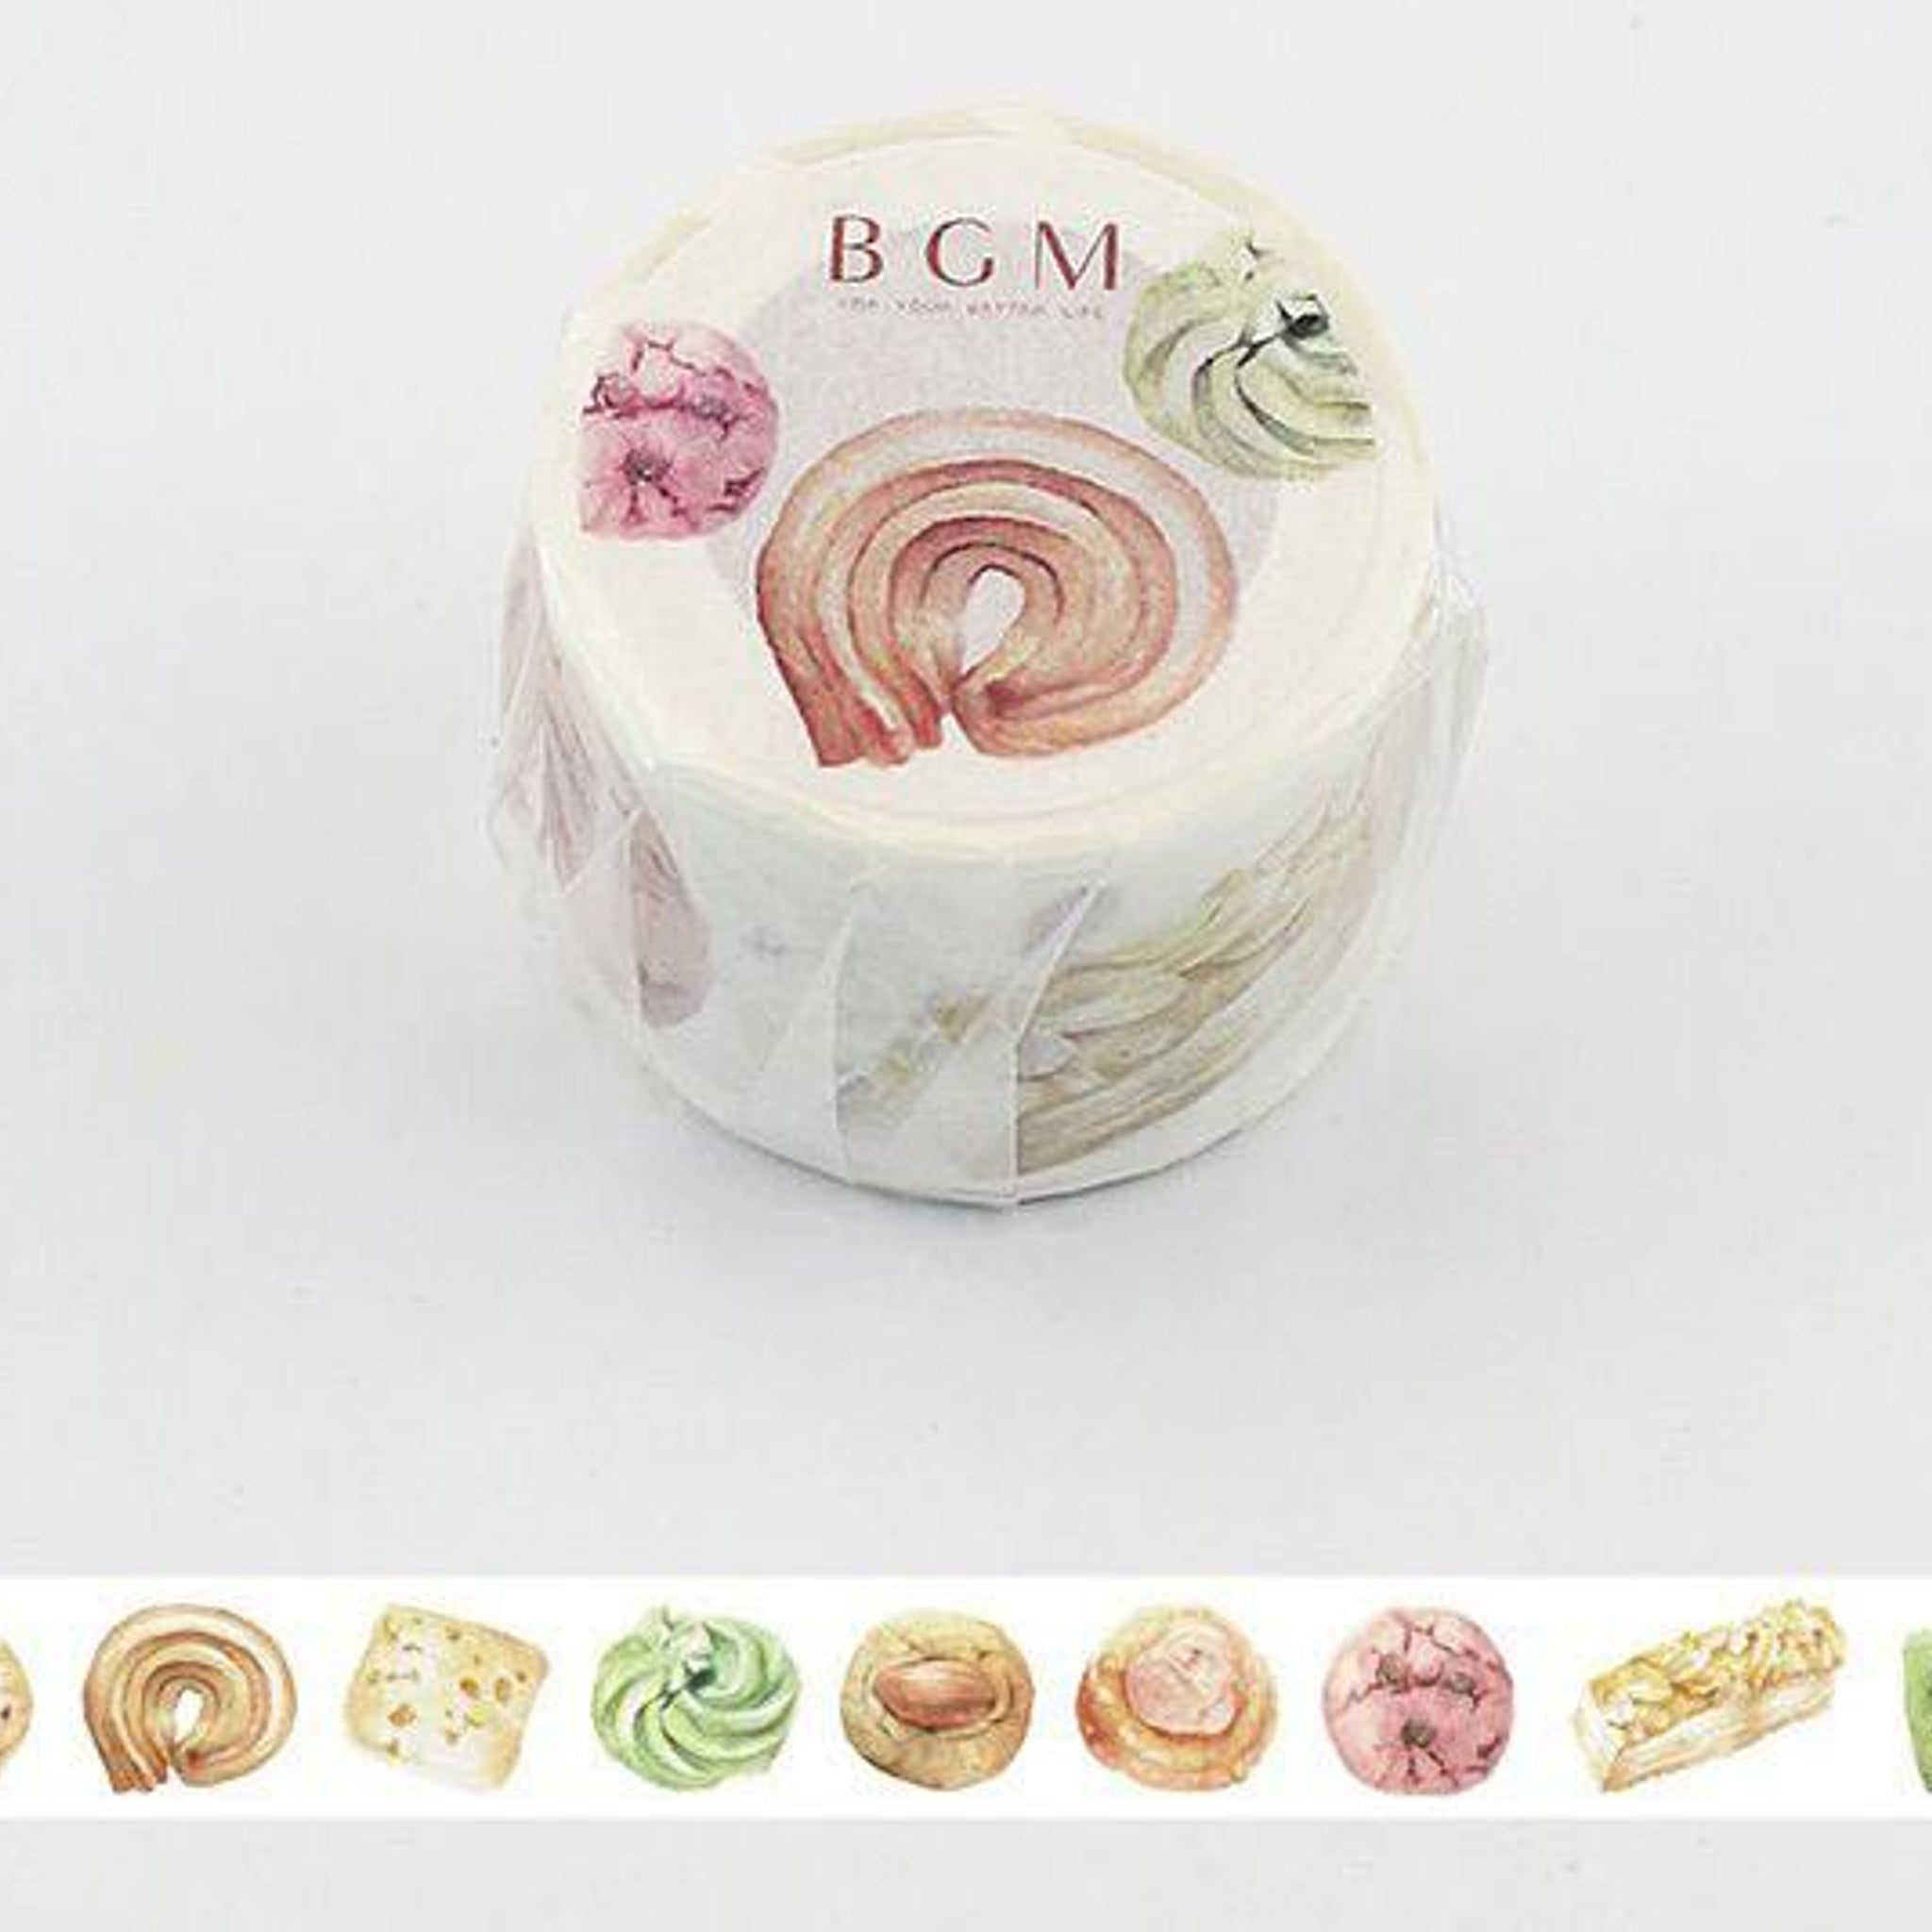 BGM Cookie Washi Tape